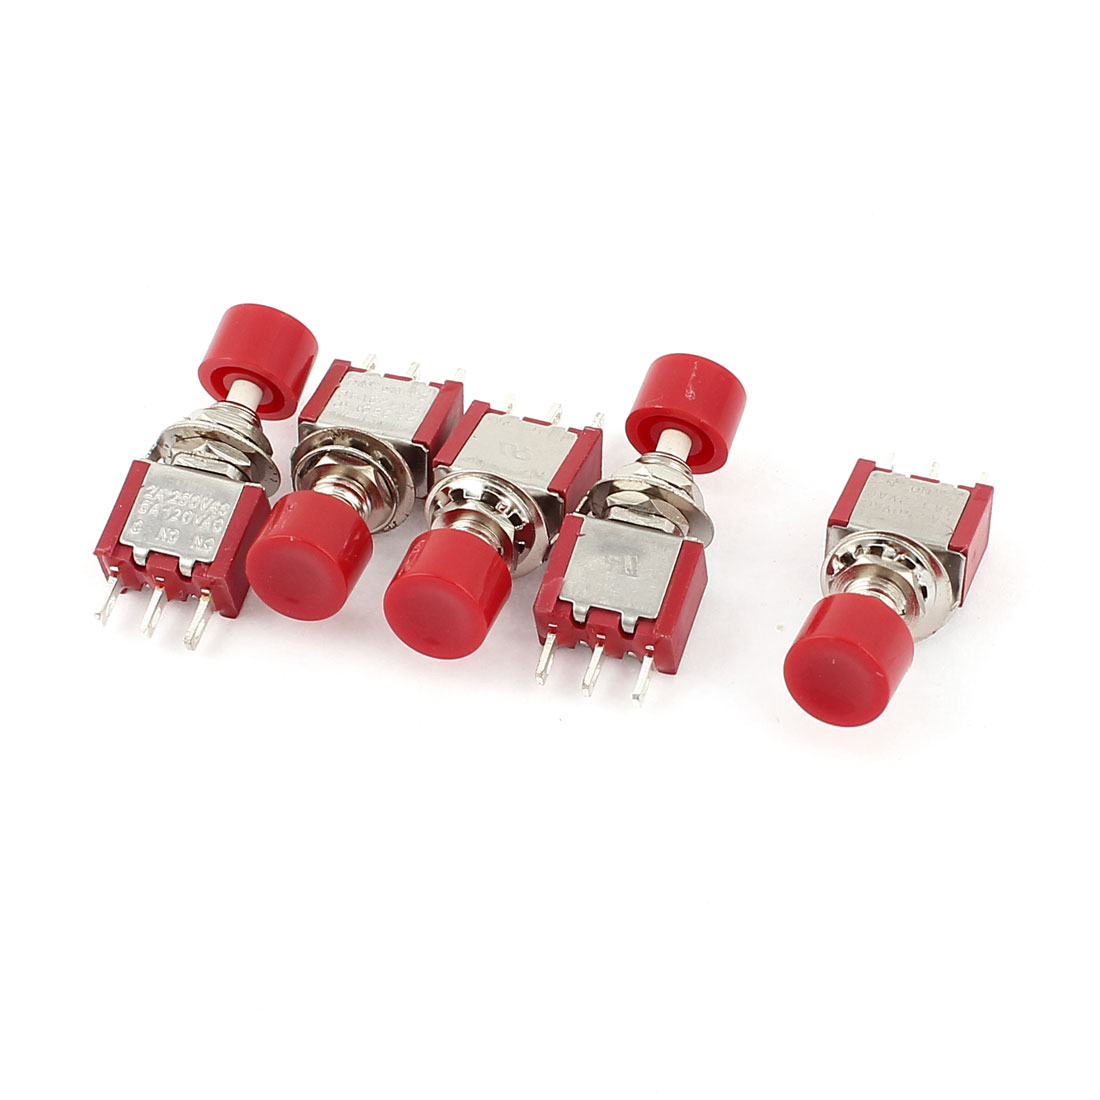 AC 250V/2A 120V/5A 3 Terminals SPDT Momentary Tactile Tact Pushbutton Switch 5pcs